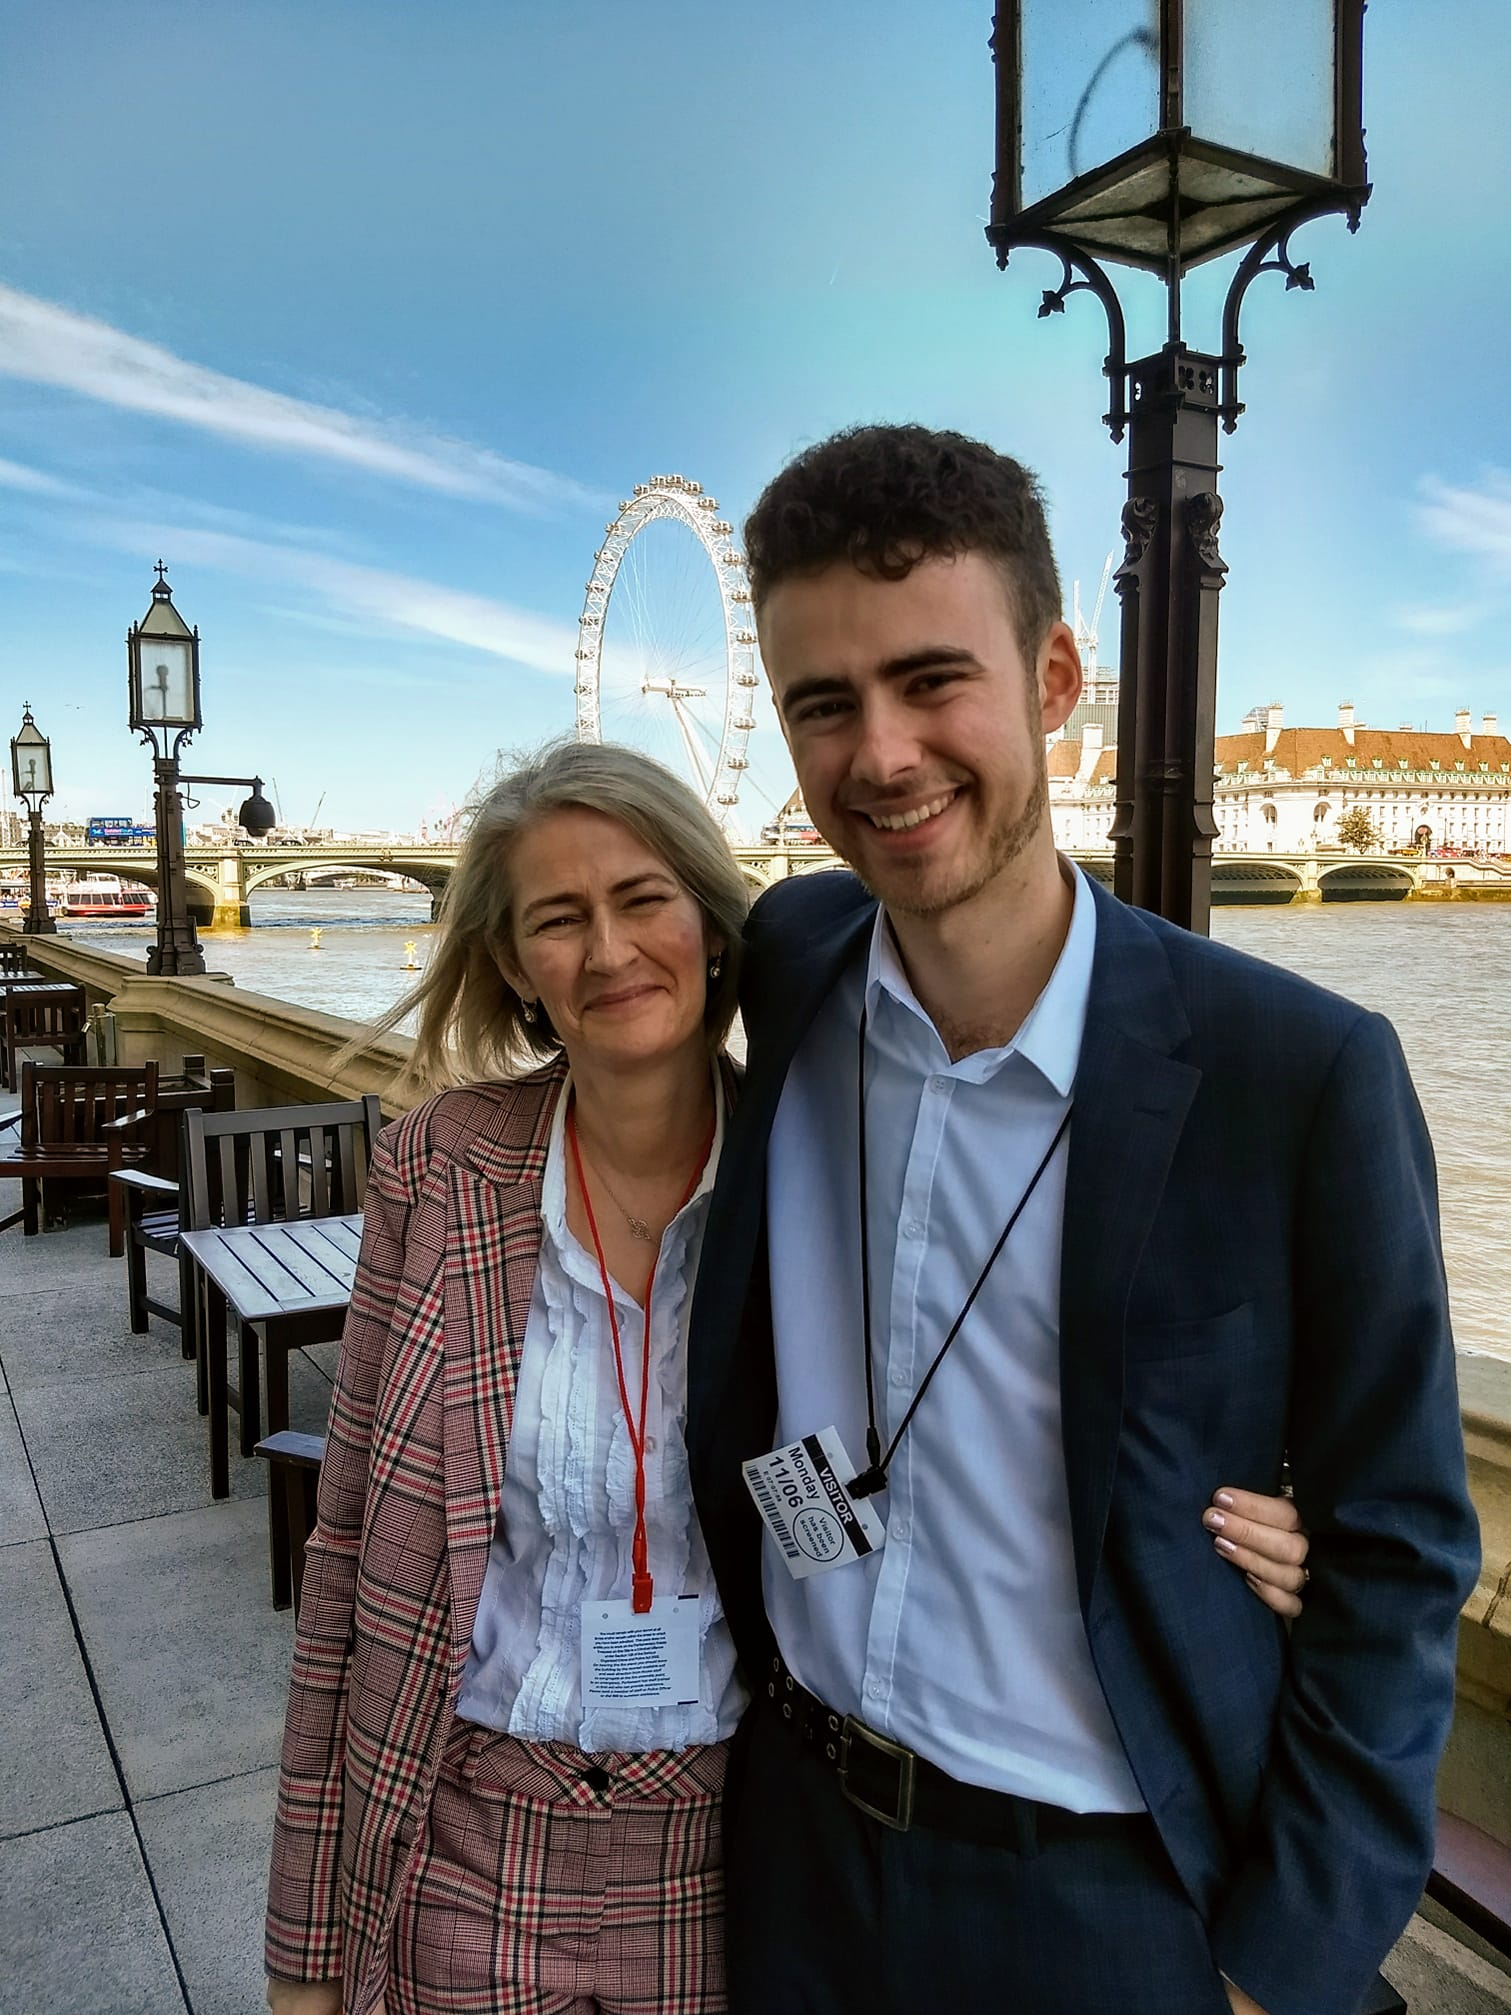 The Adam Smith Lecture 2018 was held in the Terrace Pavilion at the Houses of Parliament in London